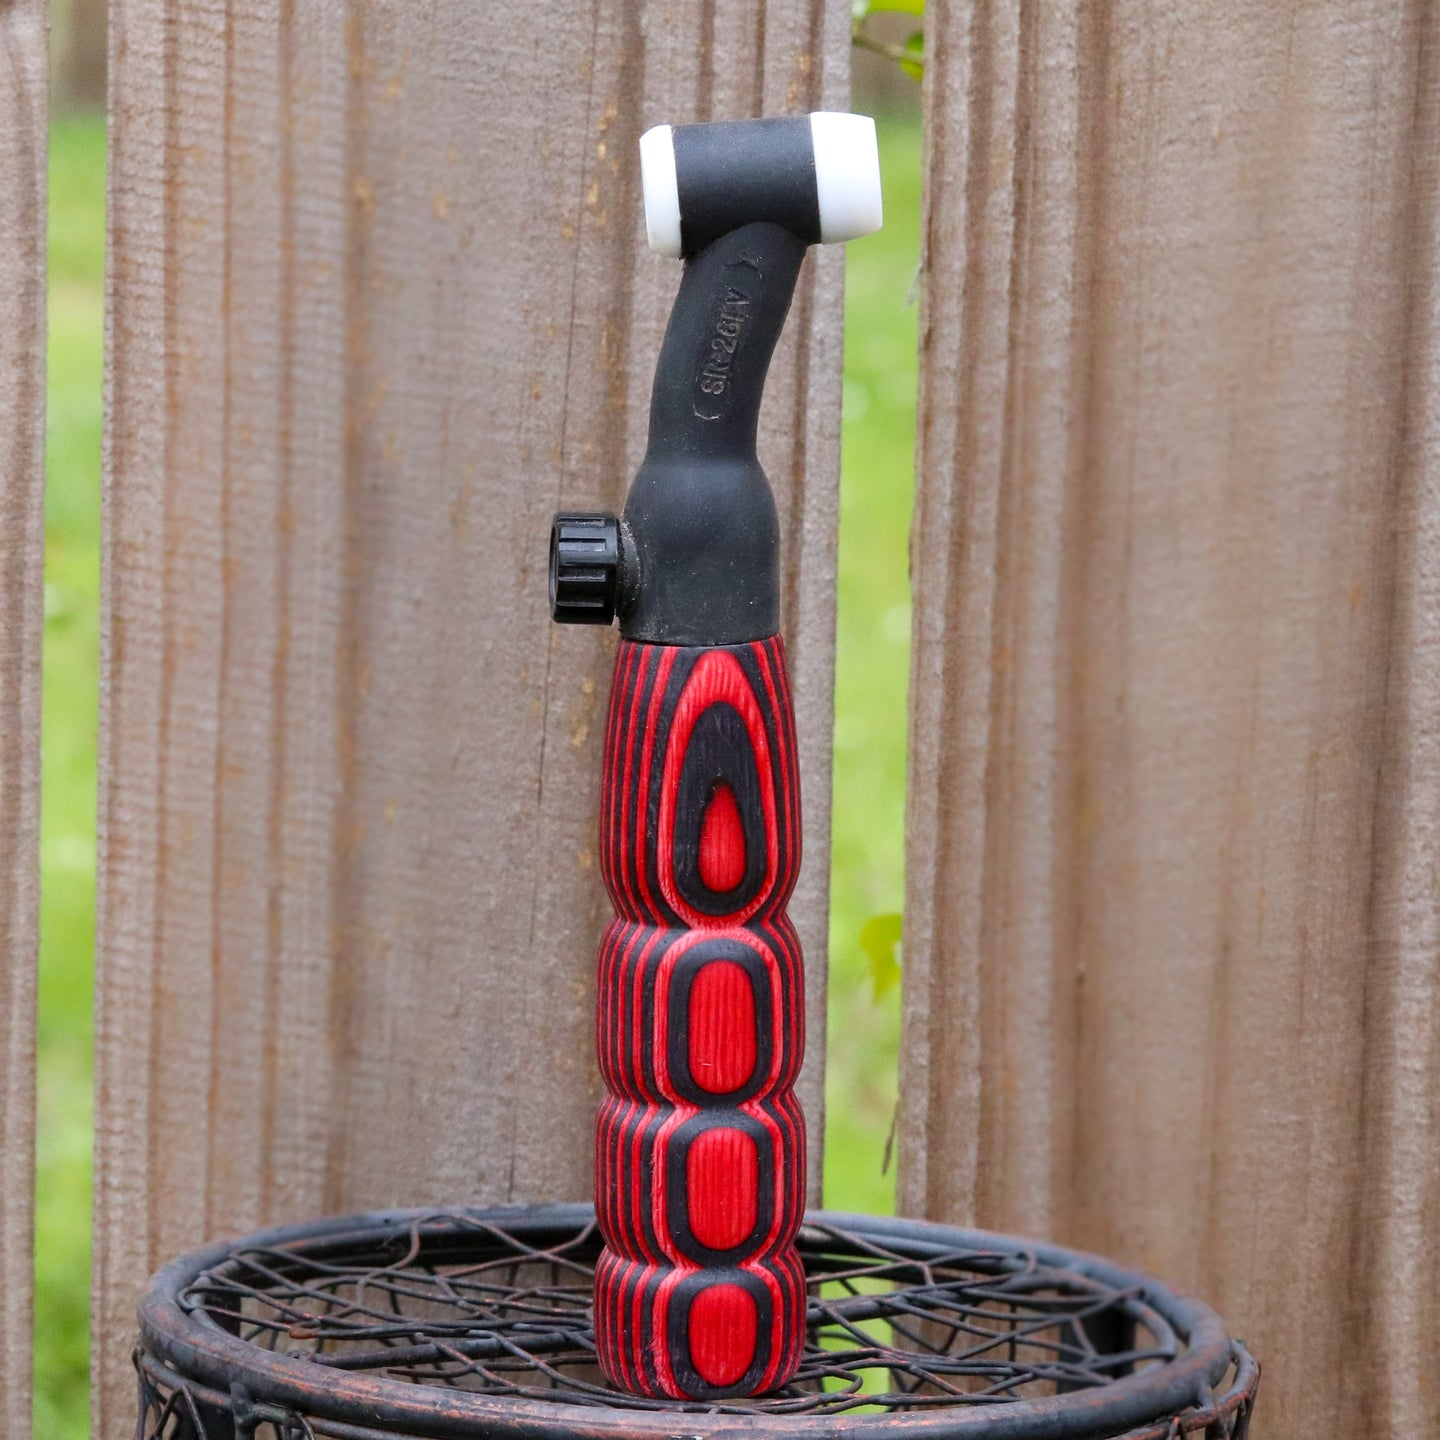 200 amp TIG Torch Wood Handle - Black & Red